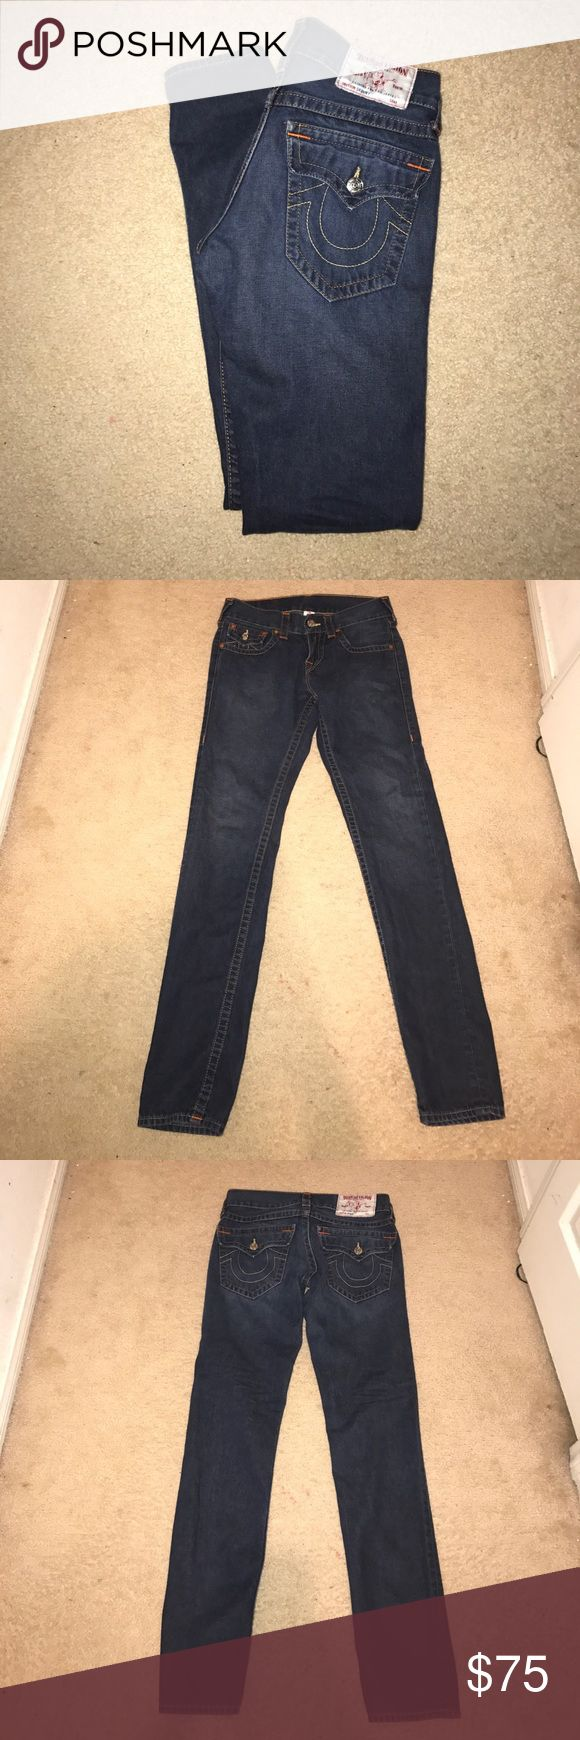 True Religion Men Skinny Jeans Men's skinny jeans authentic Size 28 L34 in good condition True Religion Jeans Skinny